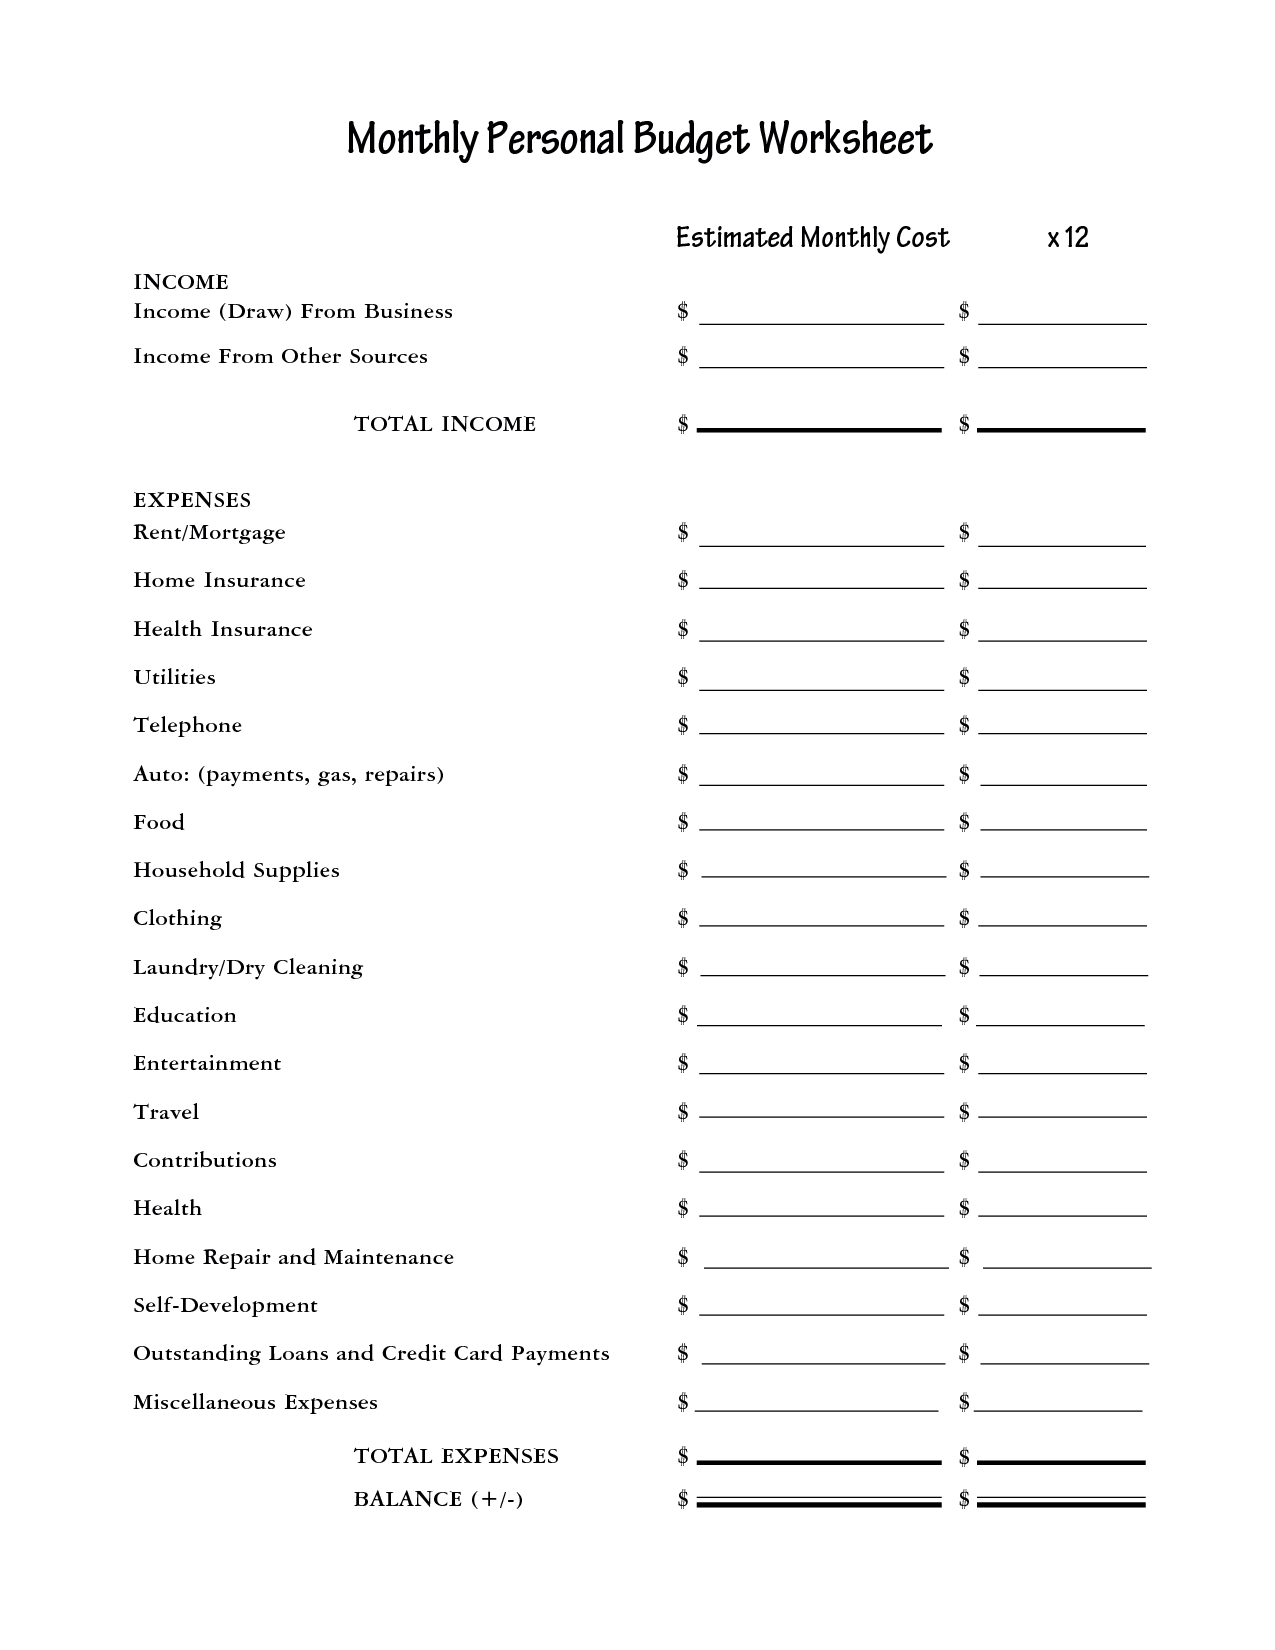 free printable worksheet budget spreadsheet monthly personal budget worksheet estimated monthly cost income income